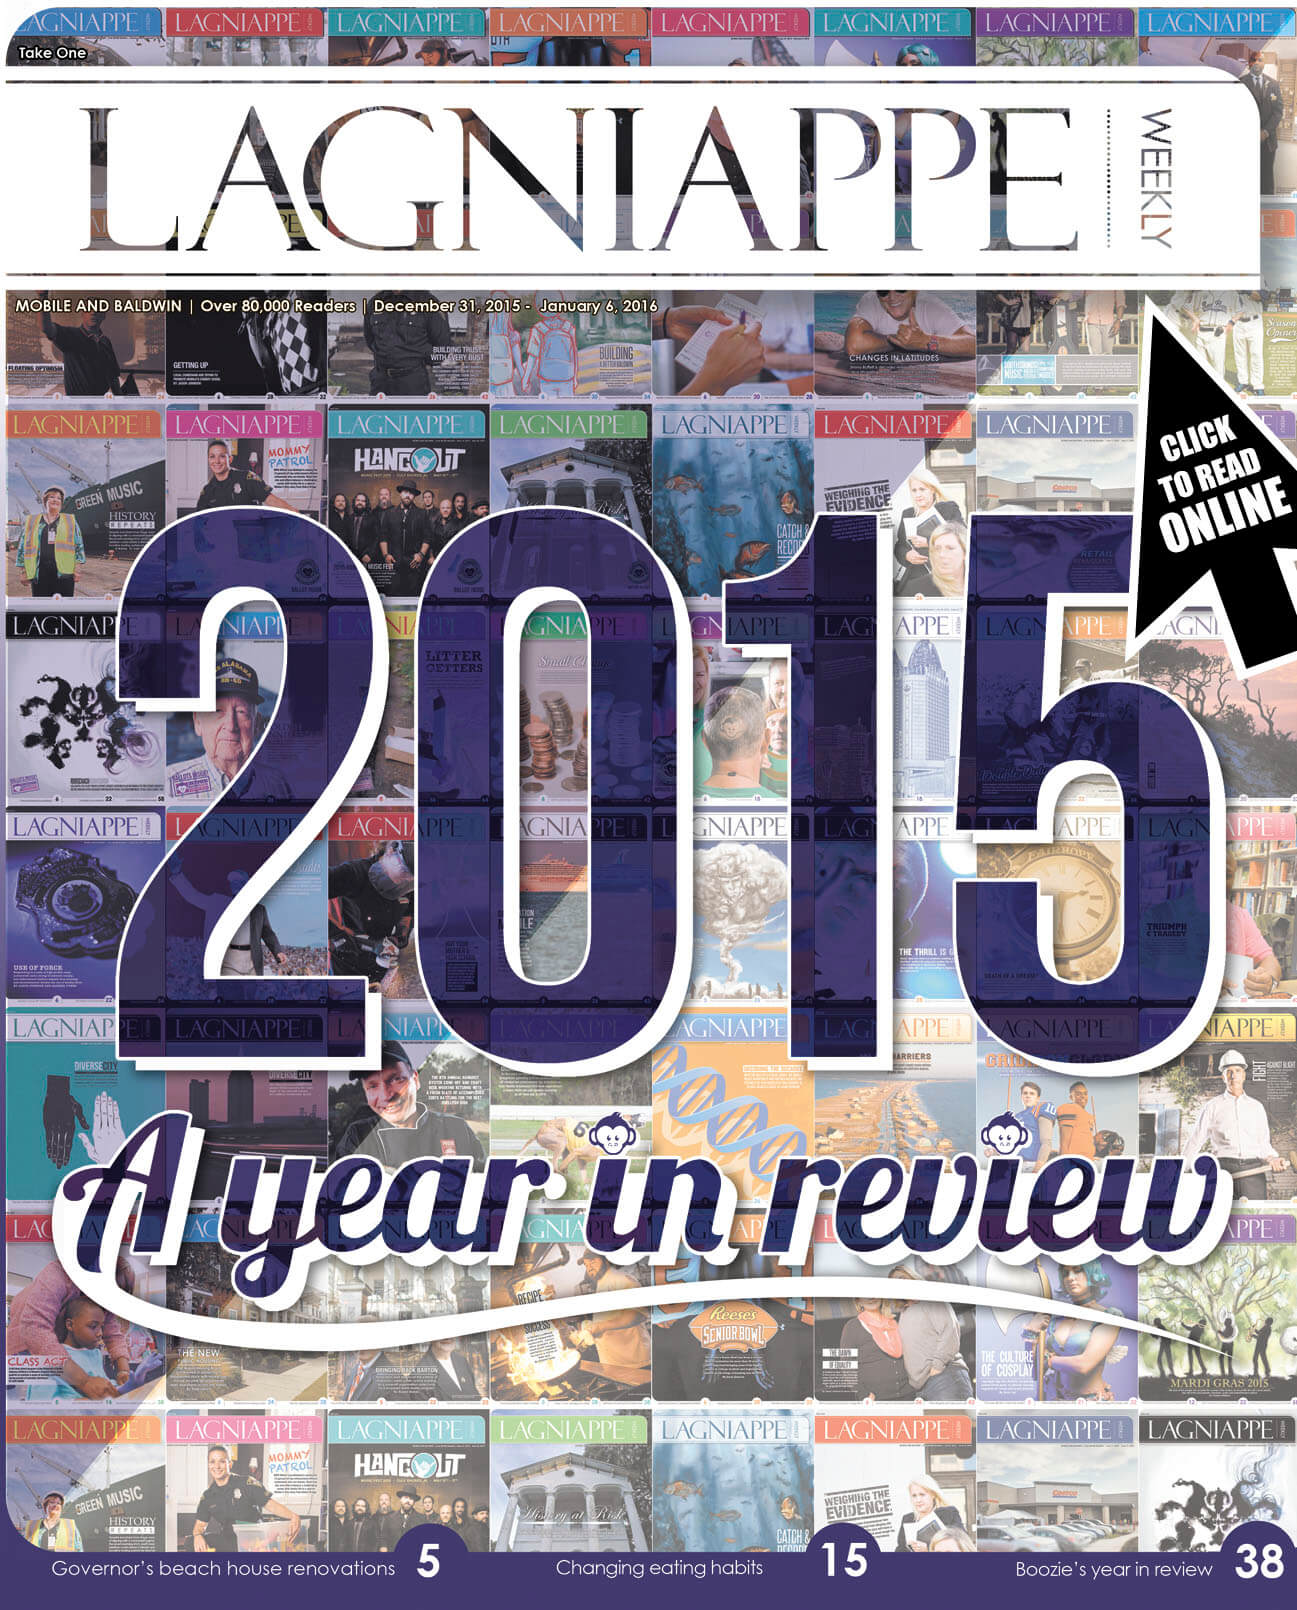 Lagniappe: Dec. 31, 2015 – Jan. 6, 2016